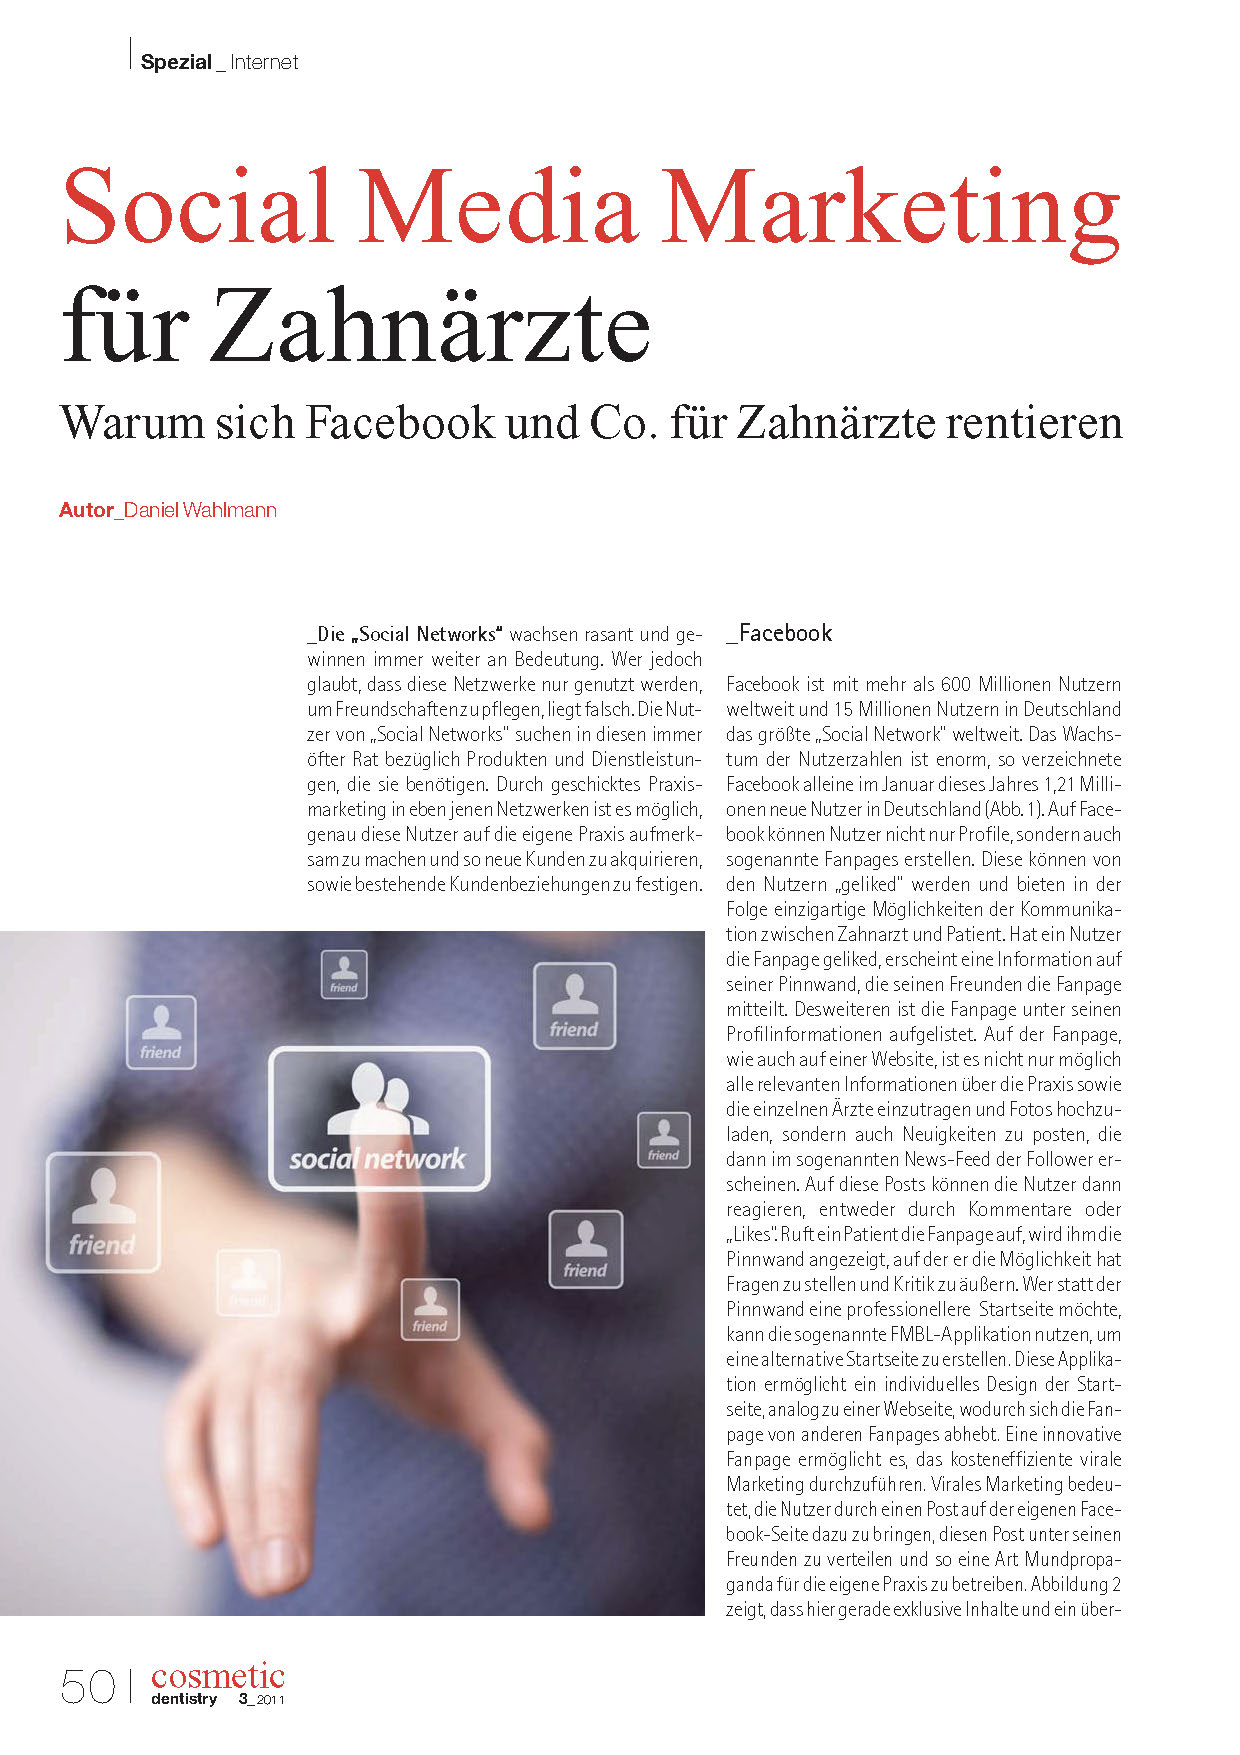 Social Media Marketing für Zahnärzte